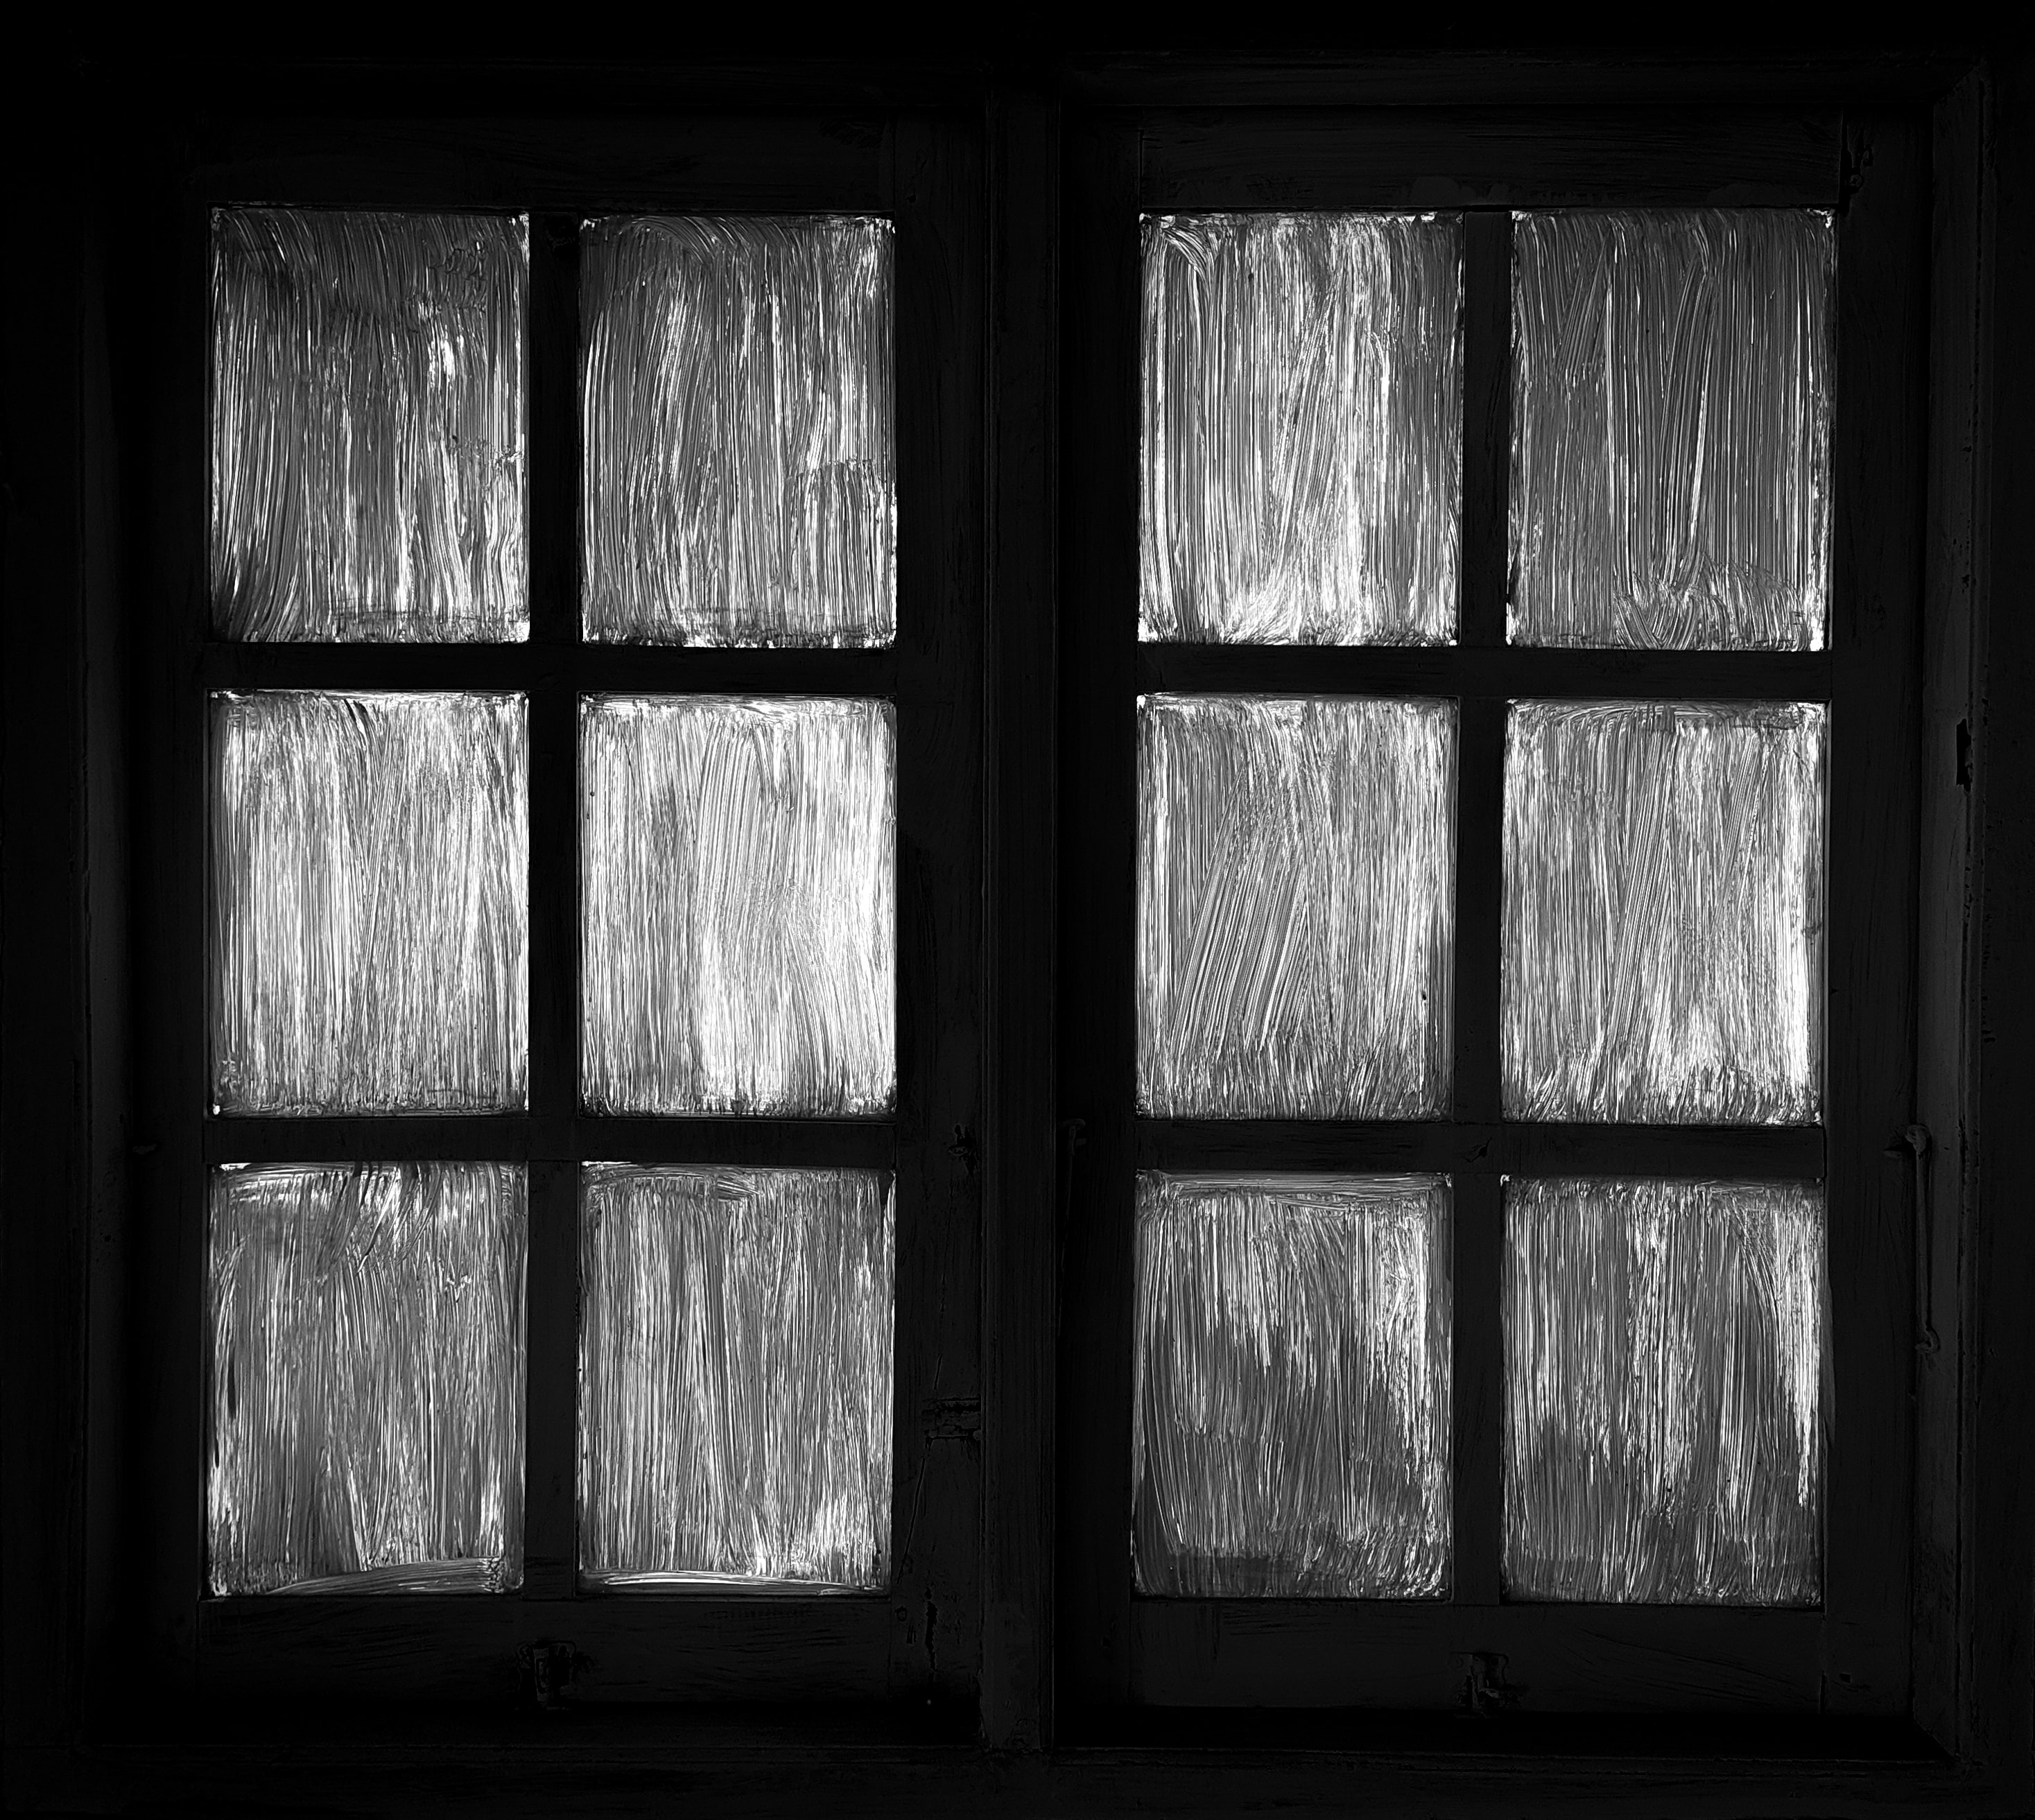 Filmmaking Trends in 2020 - An Image of Spooky Blacked out Windows